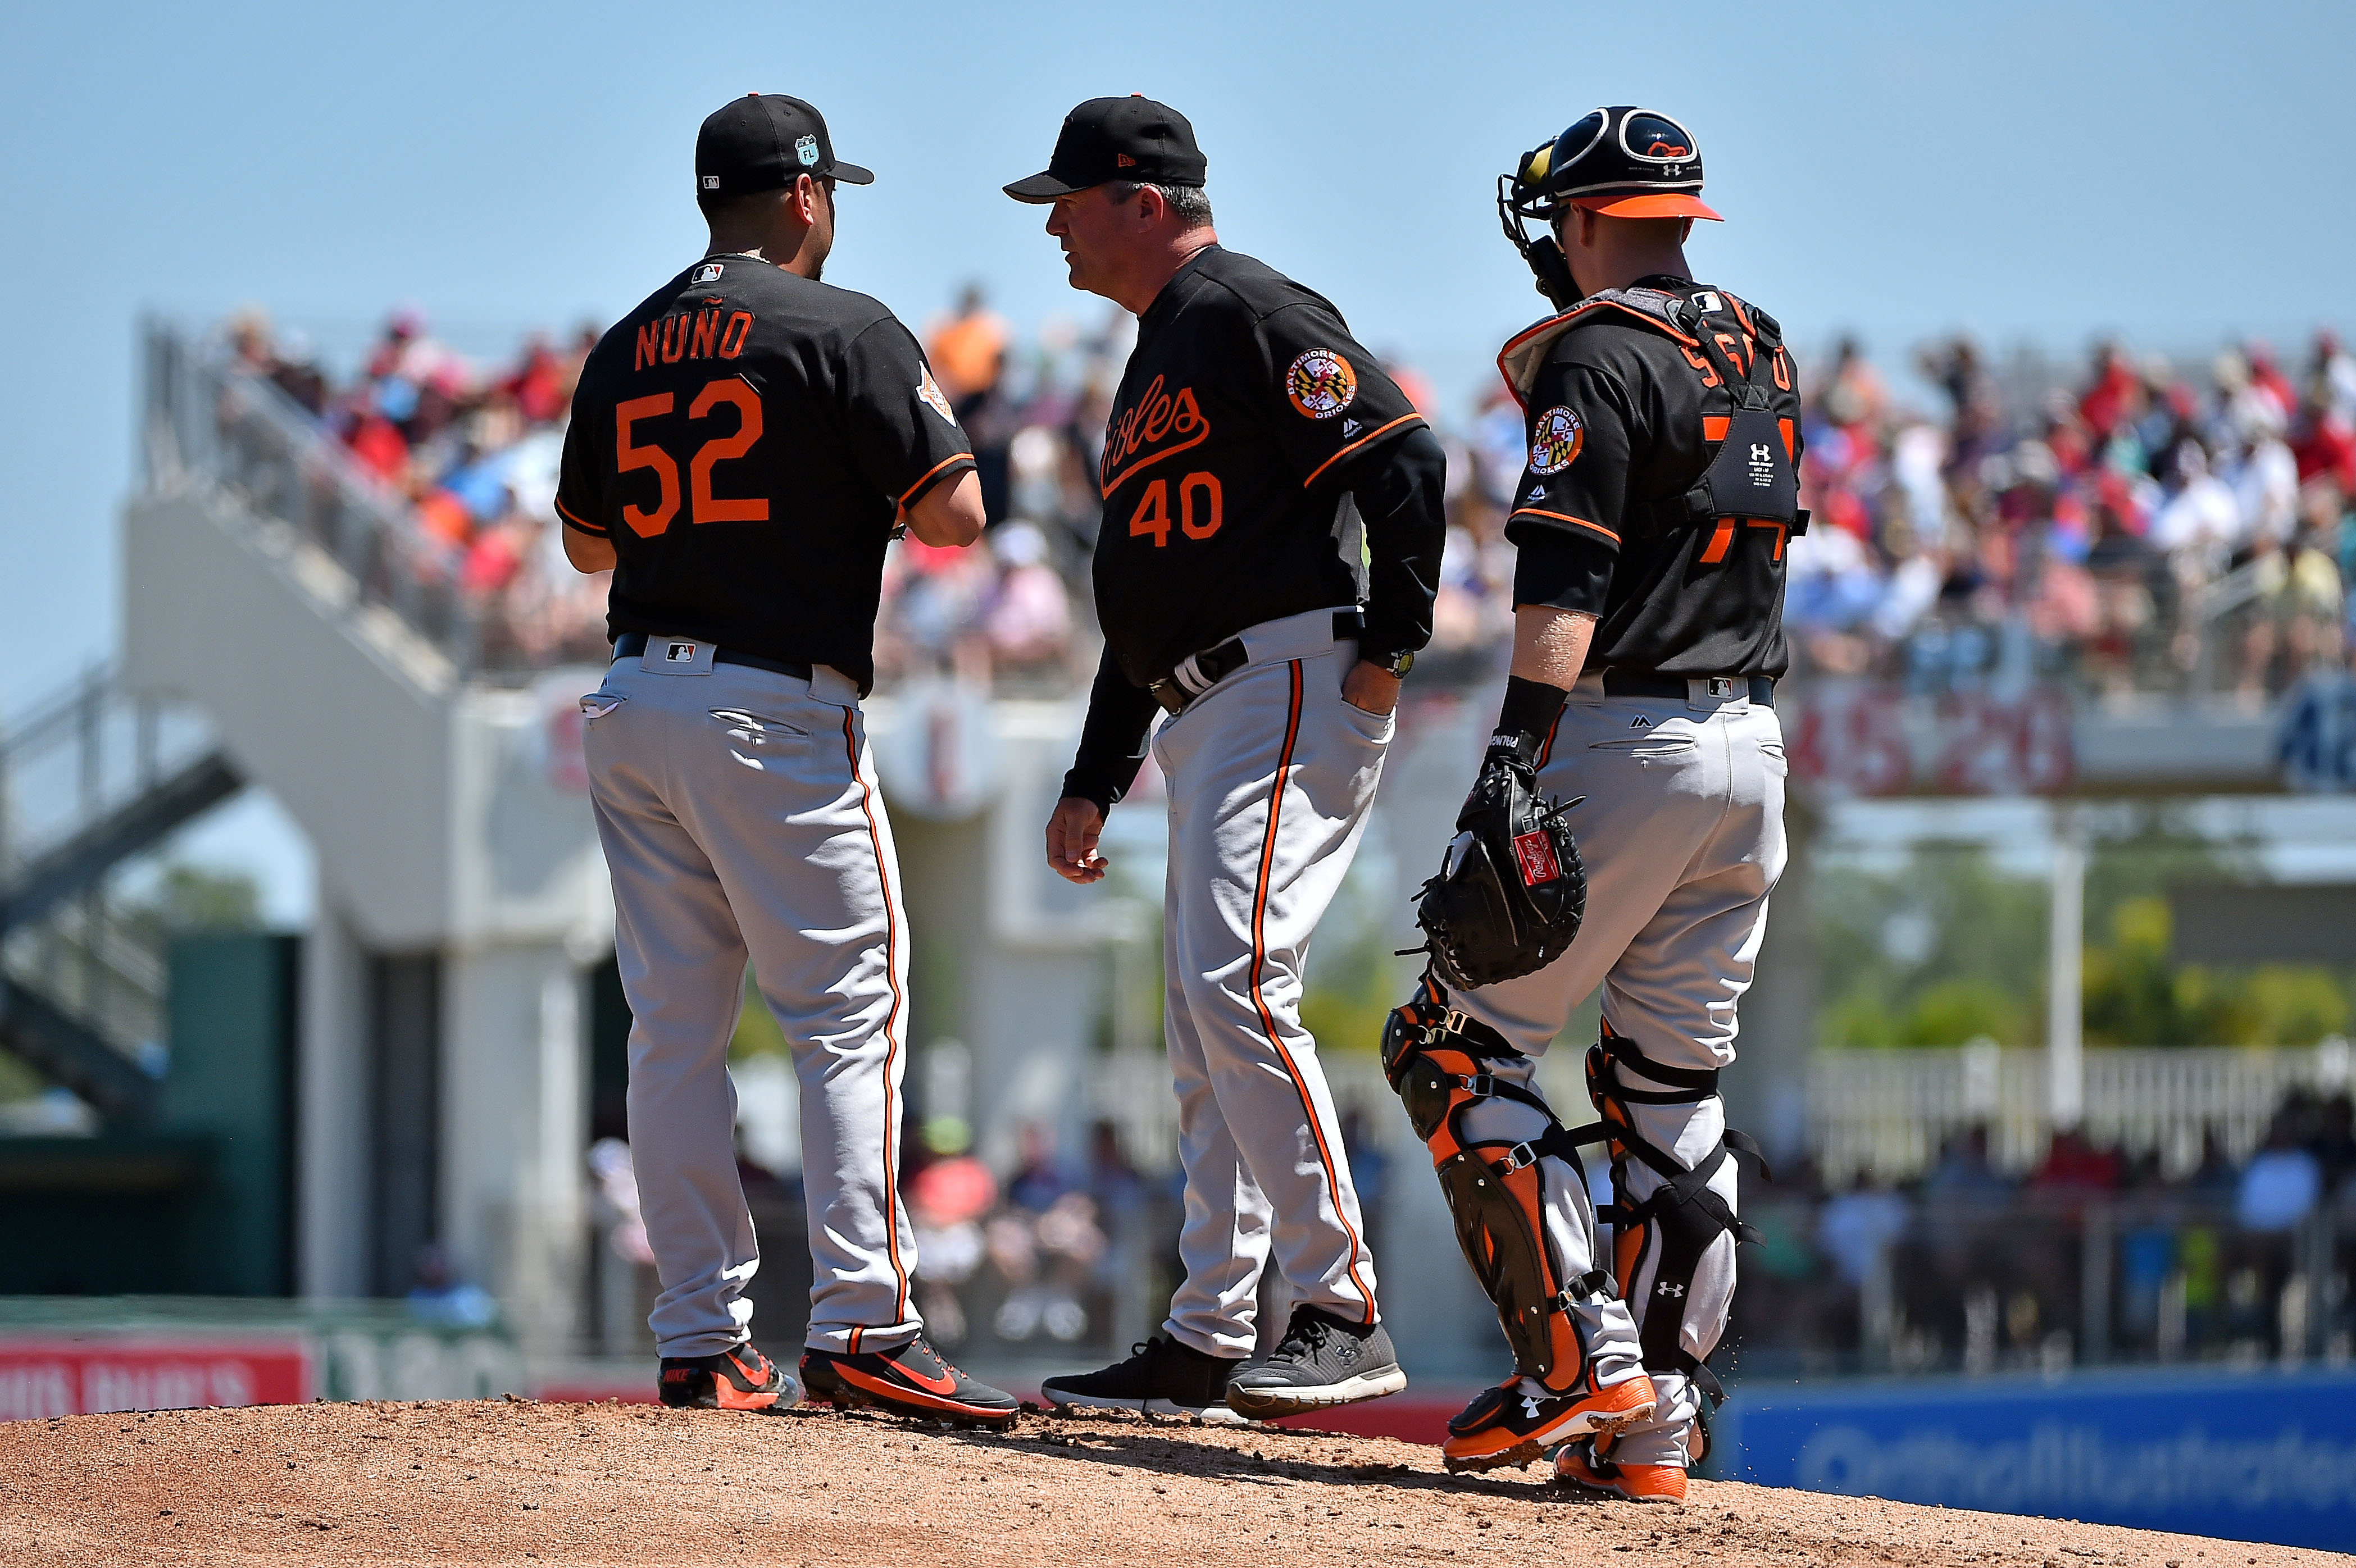 9960490-mlb-spring-training-baltimore-orioles-at-boston-red-sox